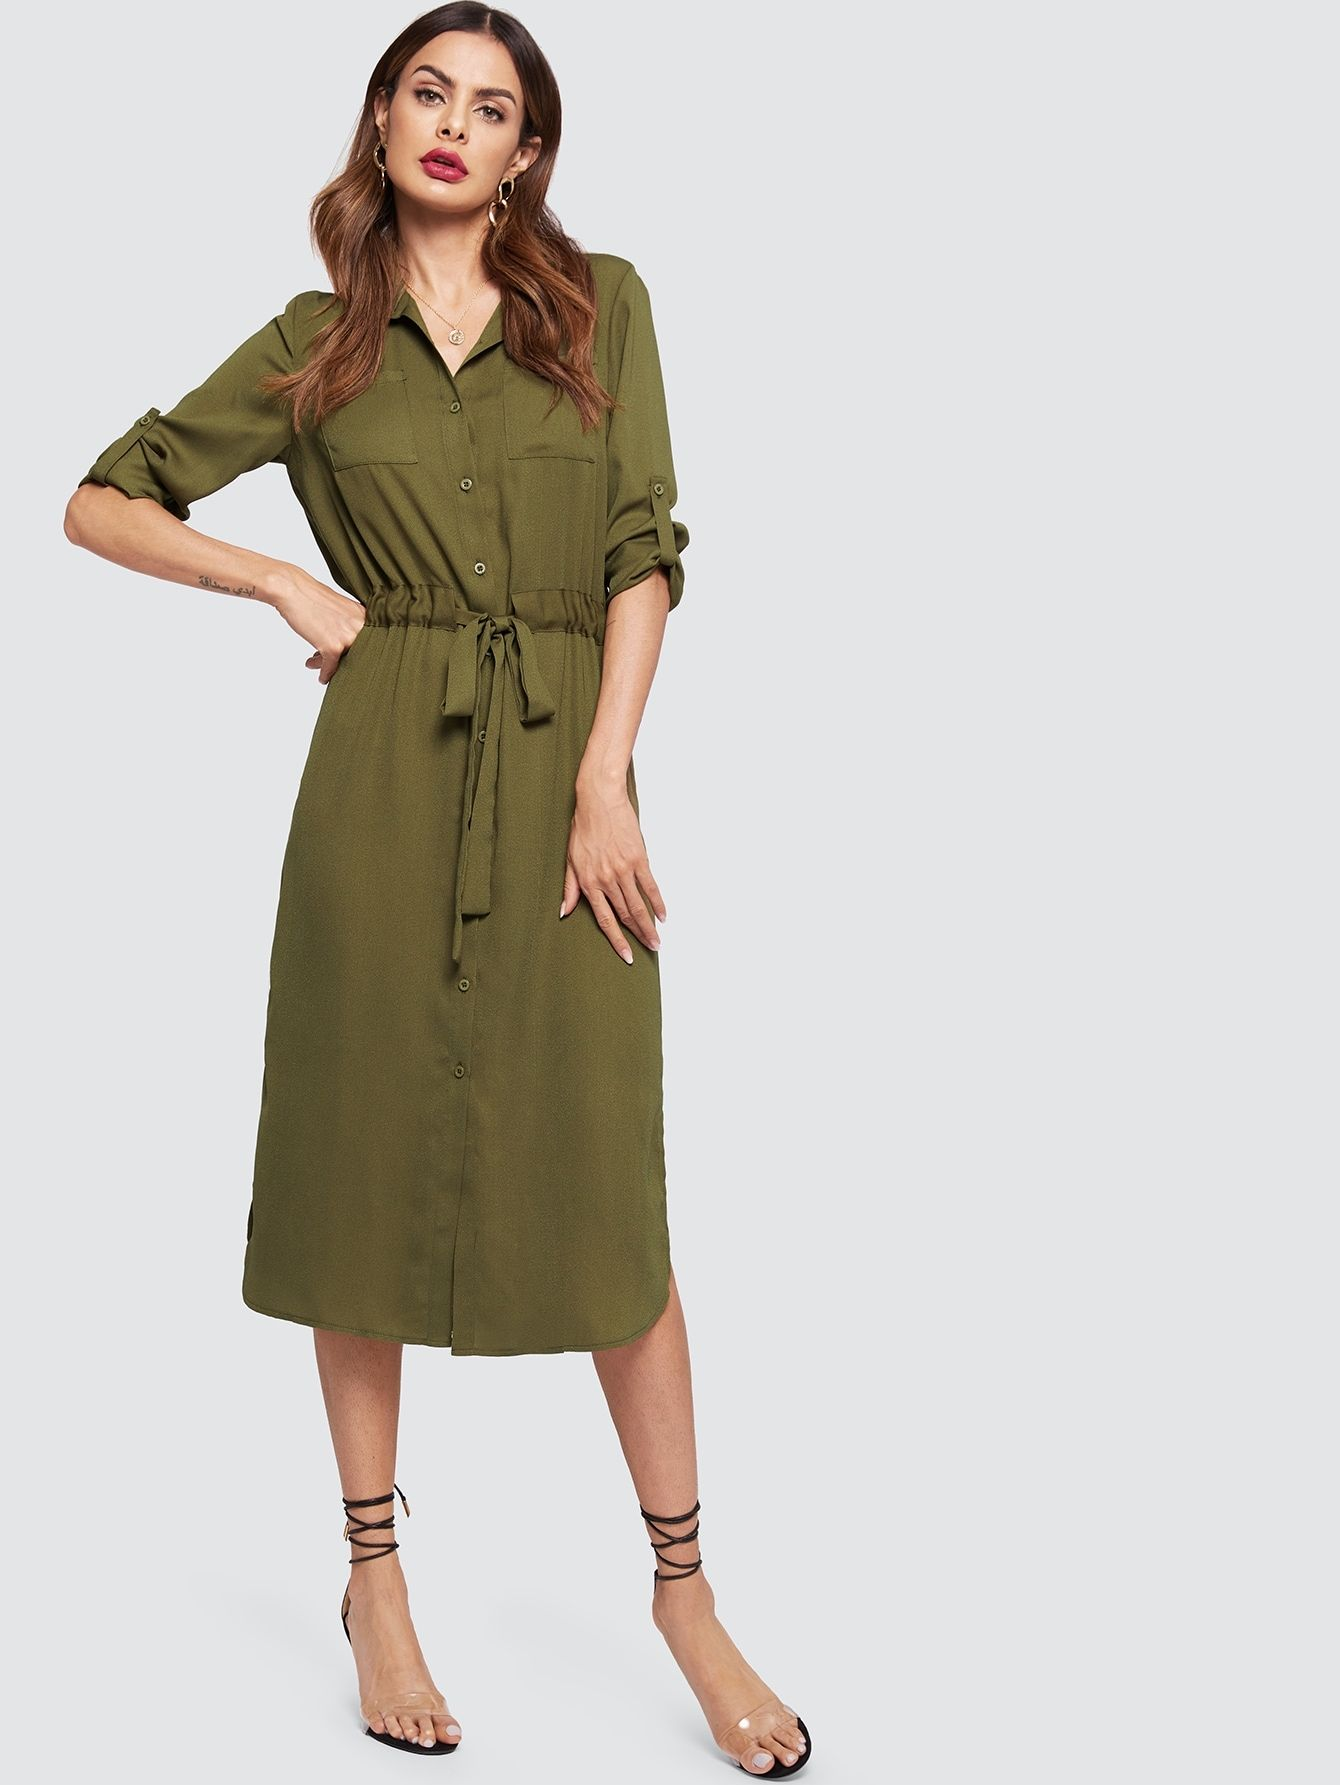 e2d6f5a9e3 Casual Shirt Button and Pocket and Drawstring and Split Plain Shift  Straight and Slit Collar Long Sleeve Roll Up Sleeve Natural Army Green Long  Length ...